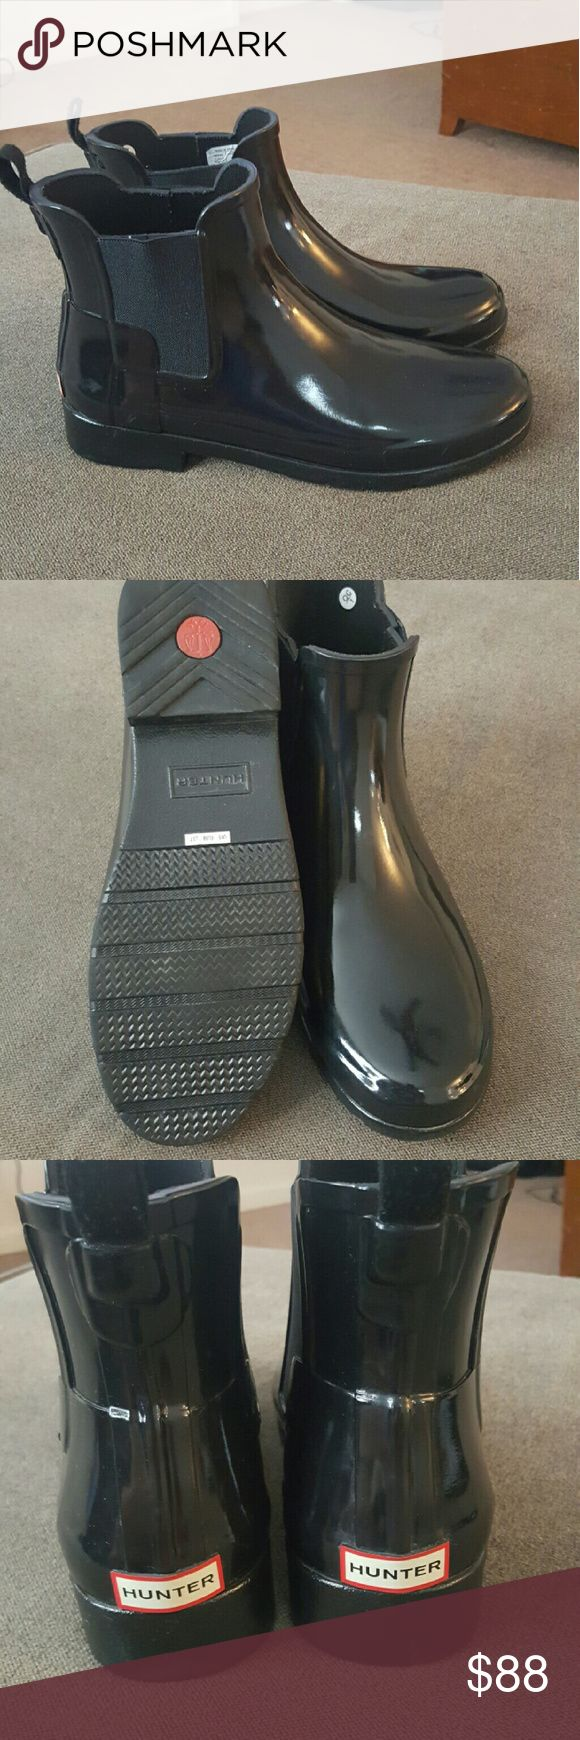 Hunter Chelsea refined boot, gloss finish! Beautiful Hunter short rain boots!  Great condition!  Small scuff on right boot - see pic #4.  Reasonable offers welcome. Hunter Shoes Winter & Rain Boots